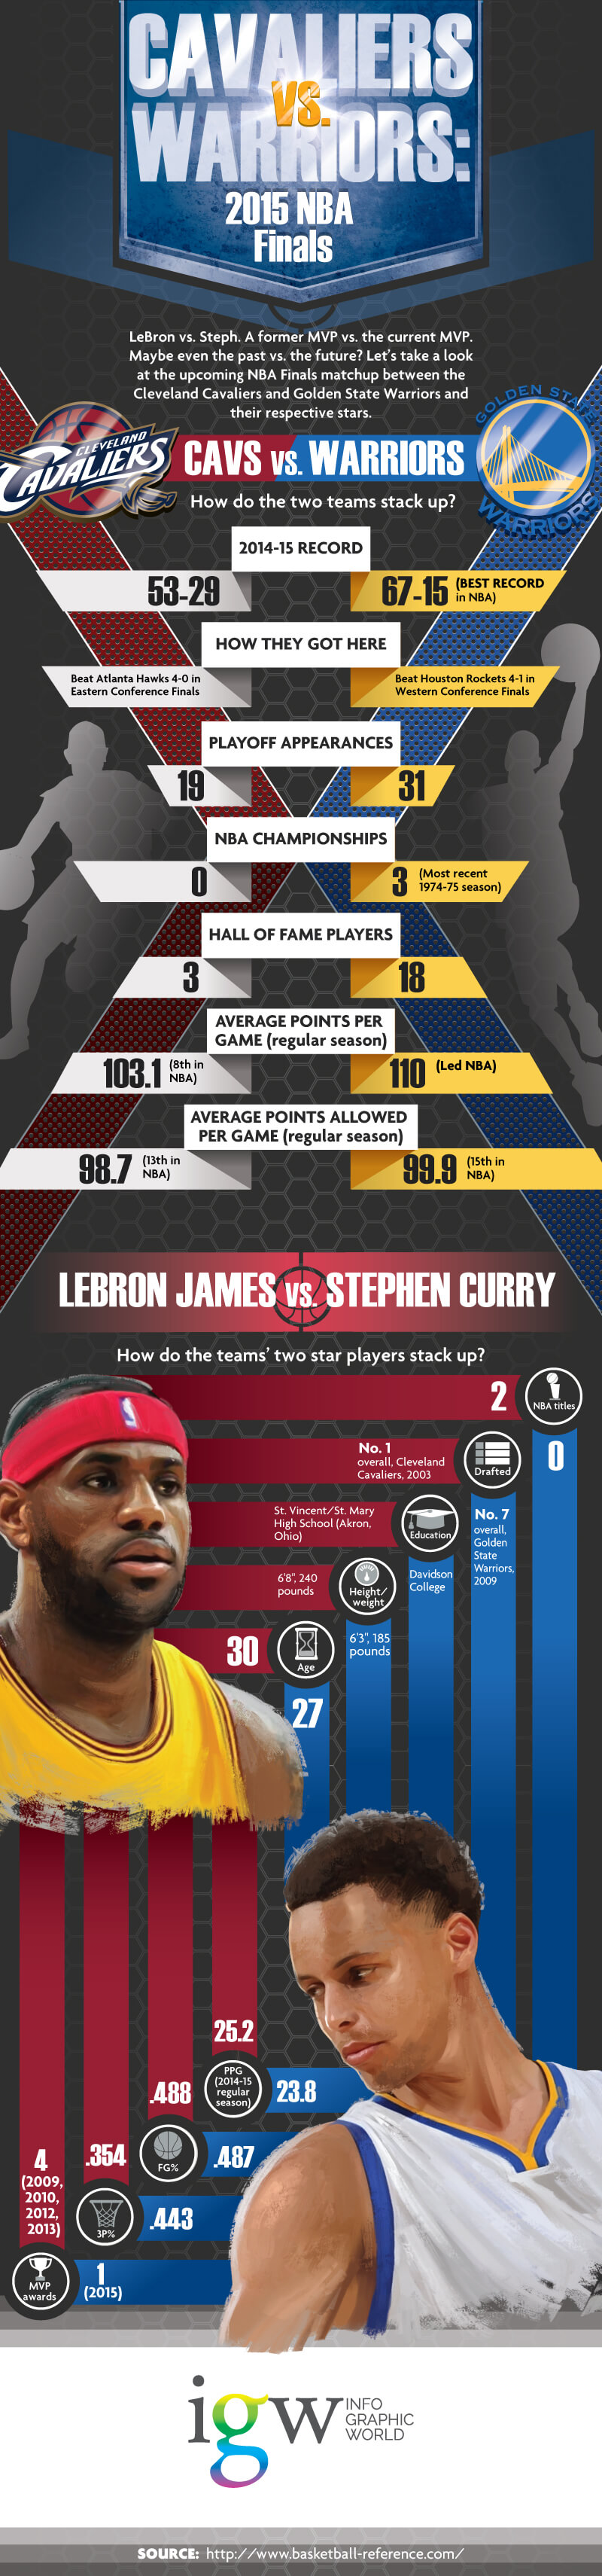 Cavaliers Vs. Warriors: 2015 NBA Finals